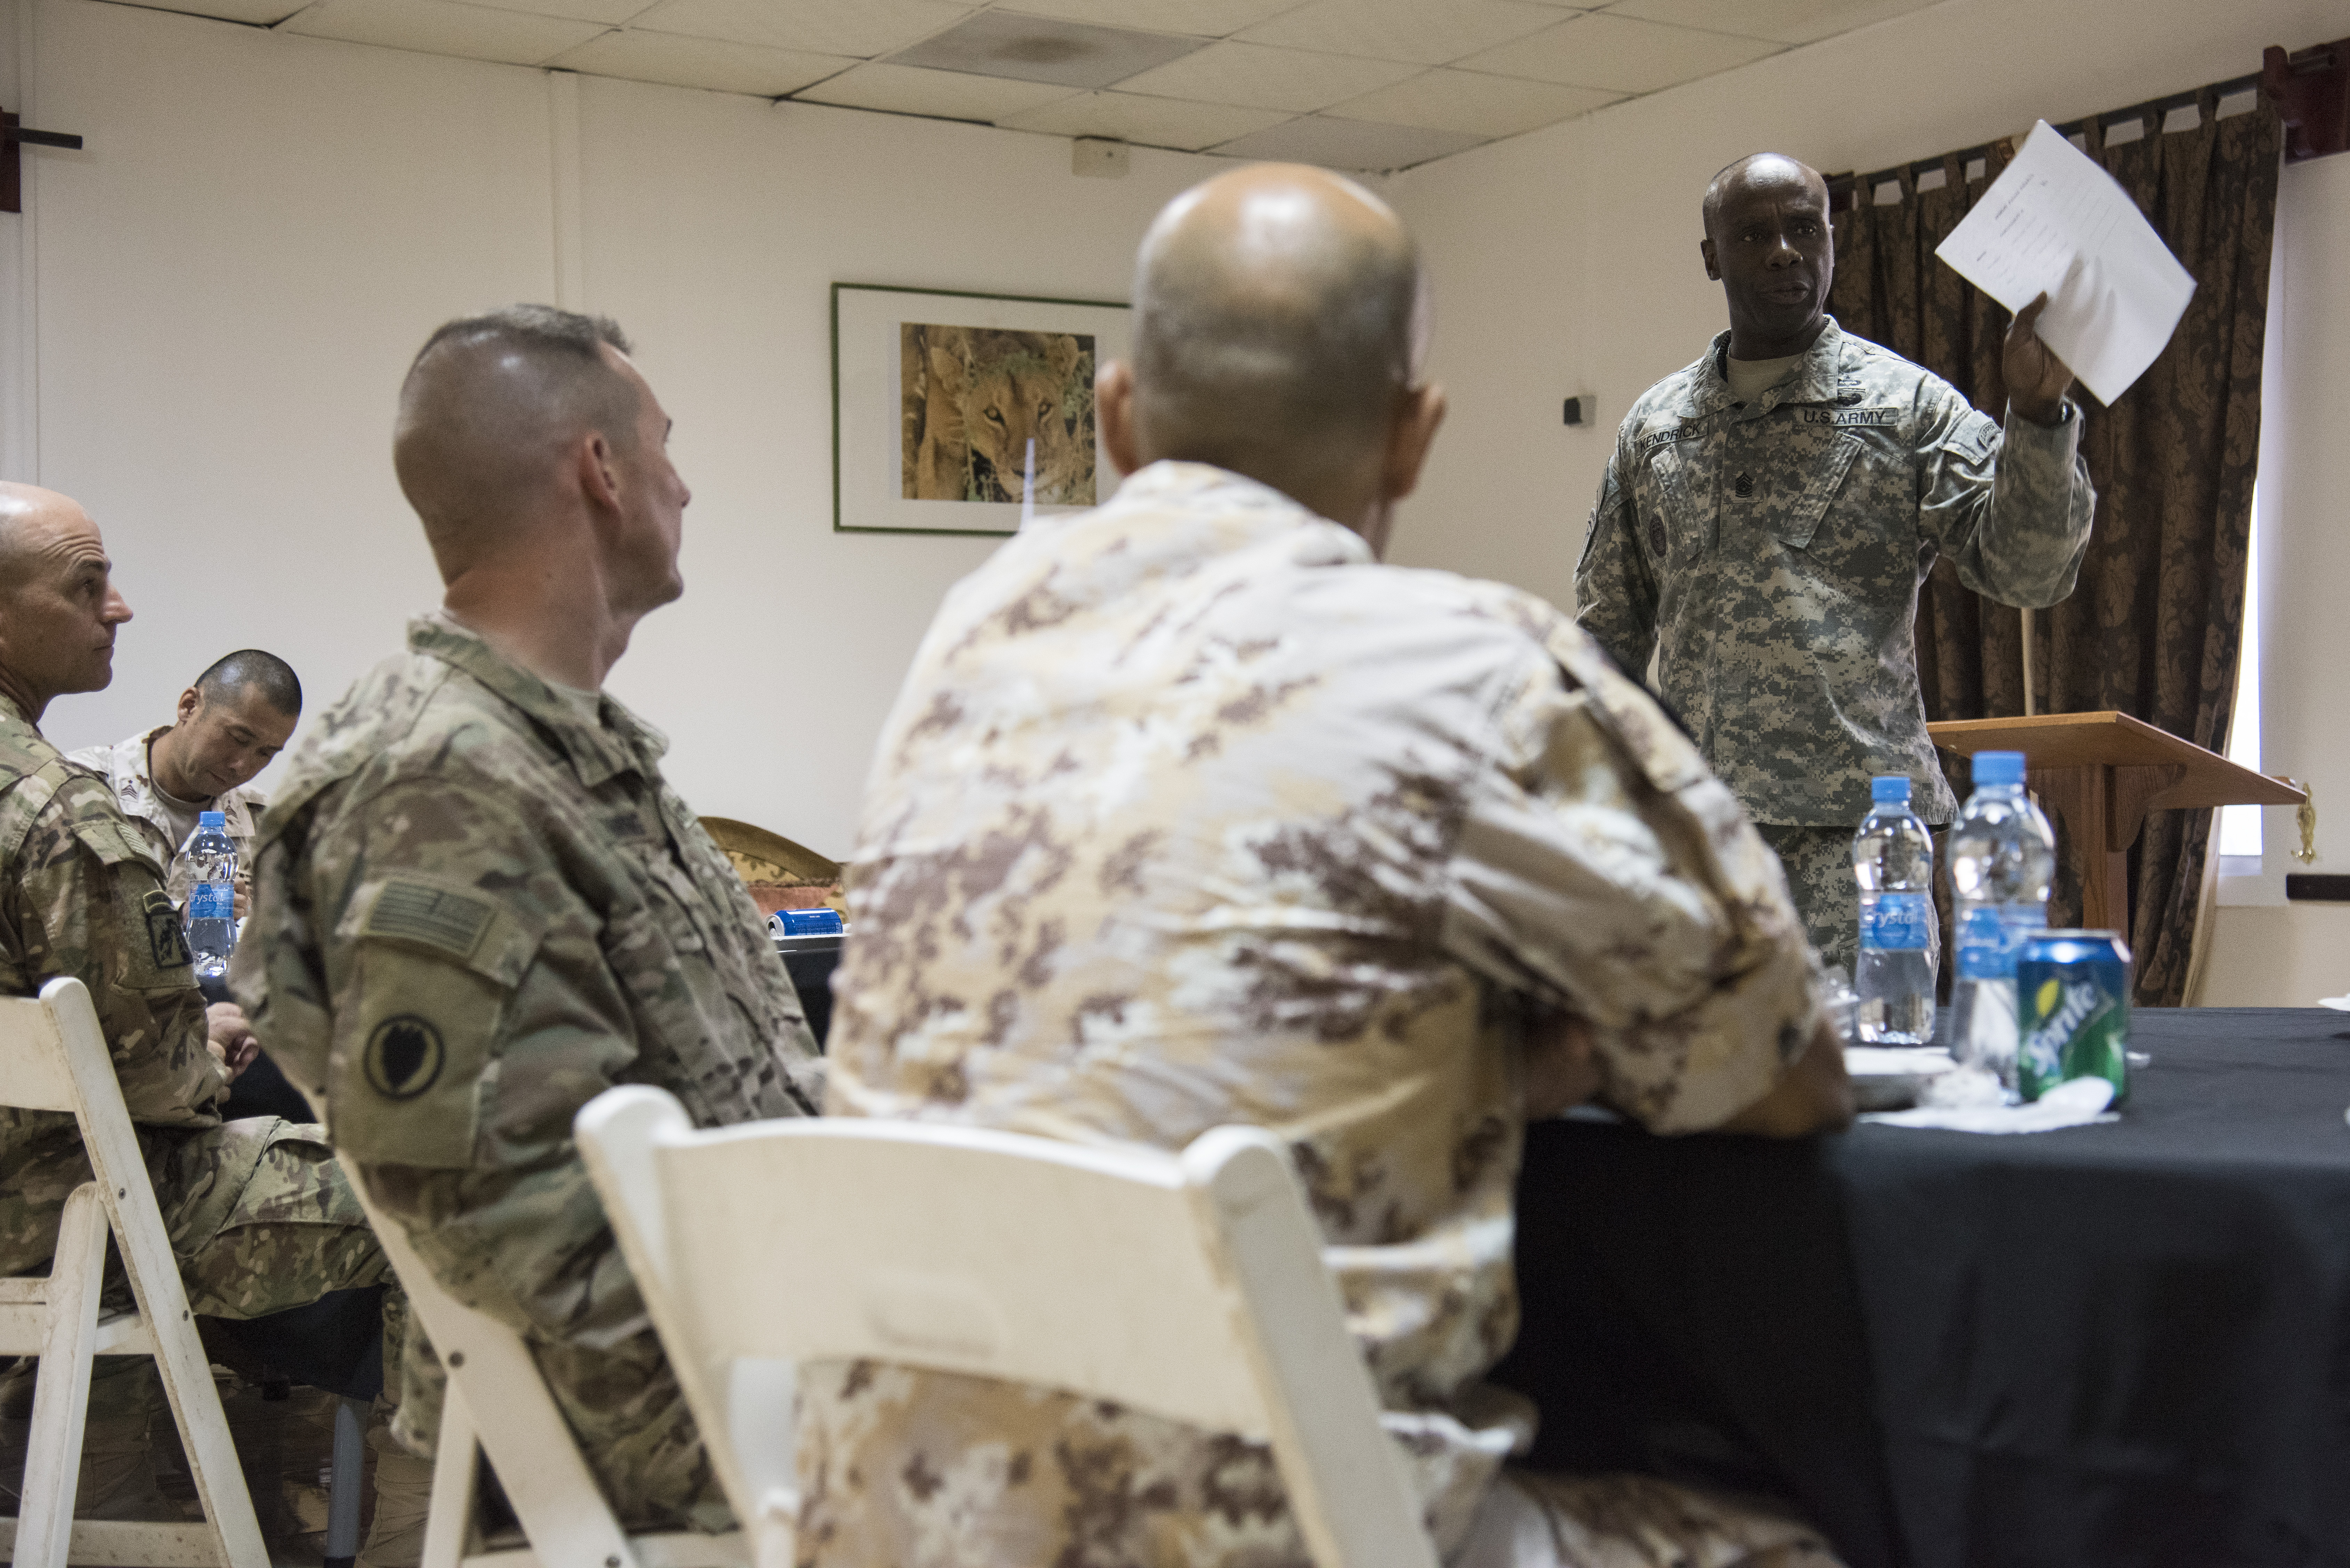 U.S. Army Command Sgt. Major Butler Kendrick, Combined Joint Task Force-Horn of Africa (CJTF-HOA) senior enlisted leader (SEL), speaks with Joint Forces Senior Enlisted Leader Professional Development (JFSELPD) course attendees at Camp Lemonnier, Djibouti, Oct.1, 2015. Kendrick developed the course as a means for SELs on CJTF-HOA and Camp Lemonnier to build fellowship and camaraderie with each other across services and countries. (U.S. Air Force photo by Staff Sgt. Nathan Maysonet)